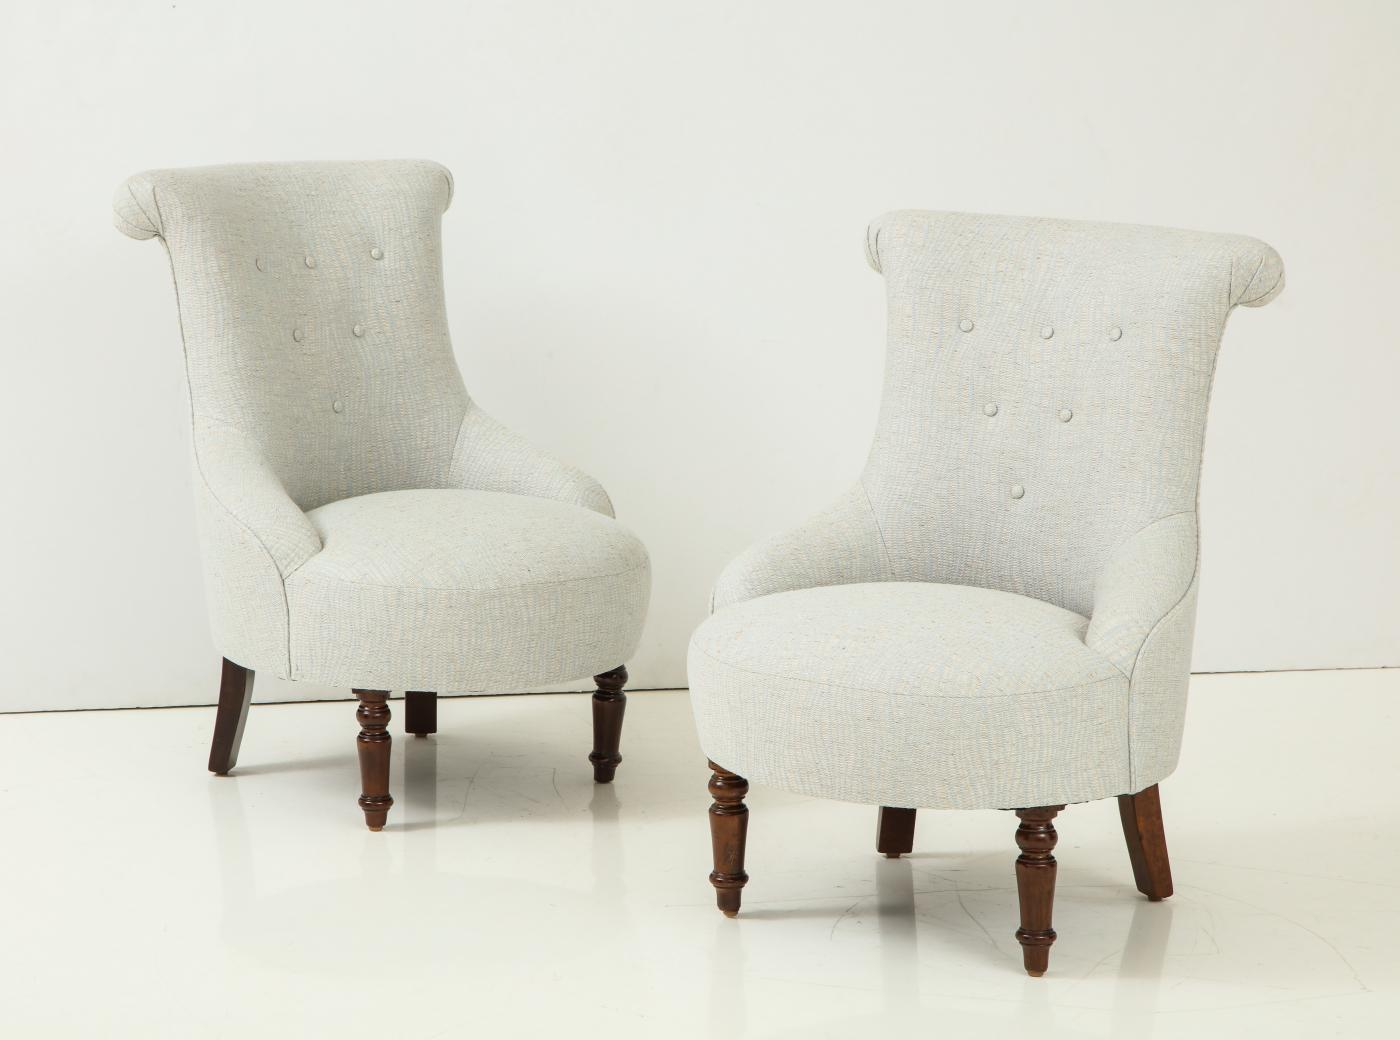 Pair of French 40's Salon side chairs.